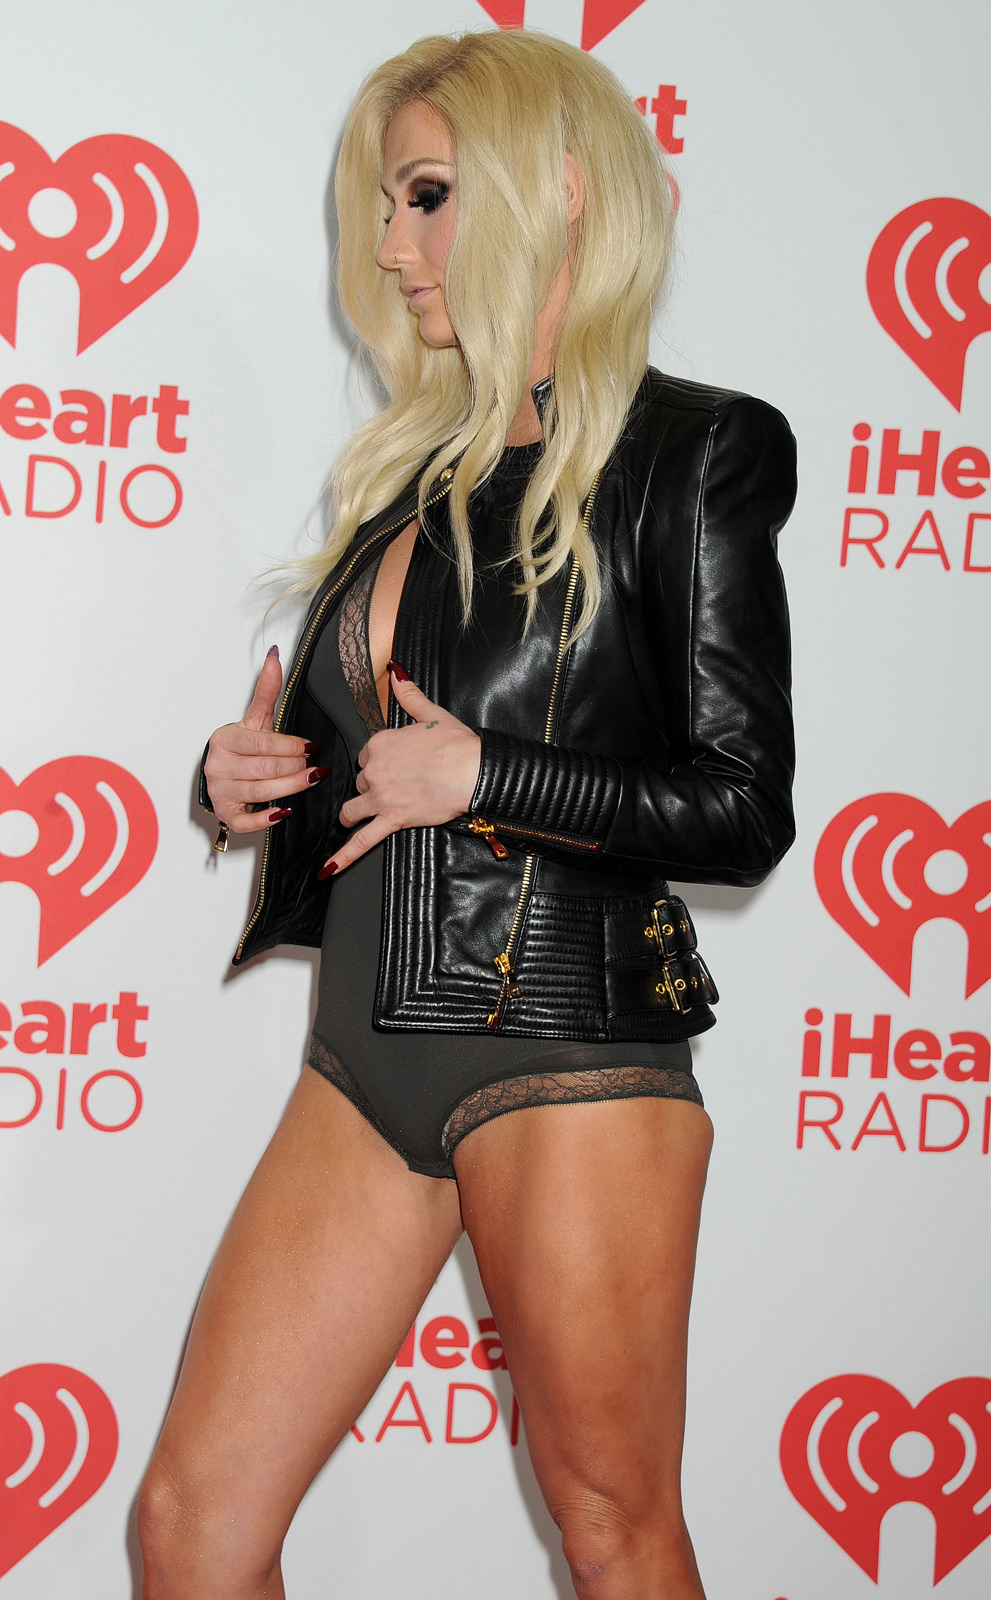 Kesha Sebert Photo Gallery